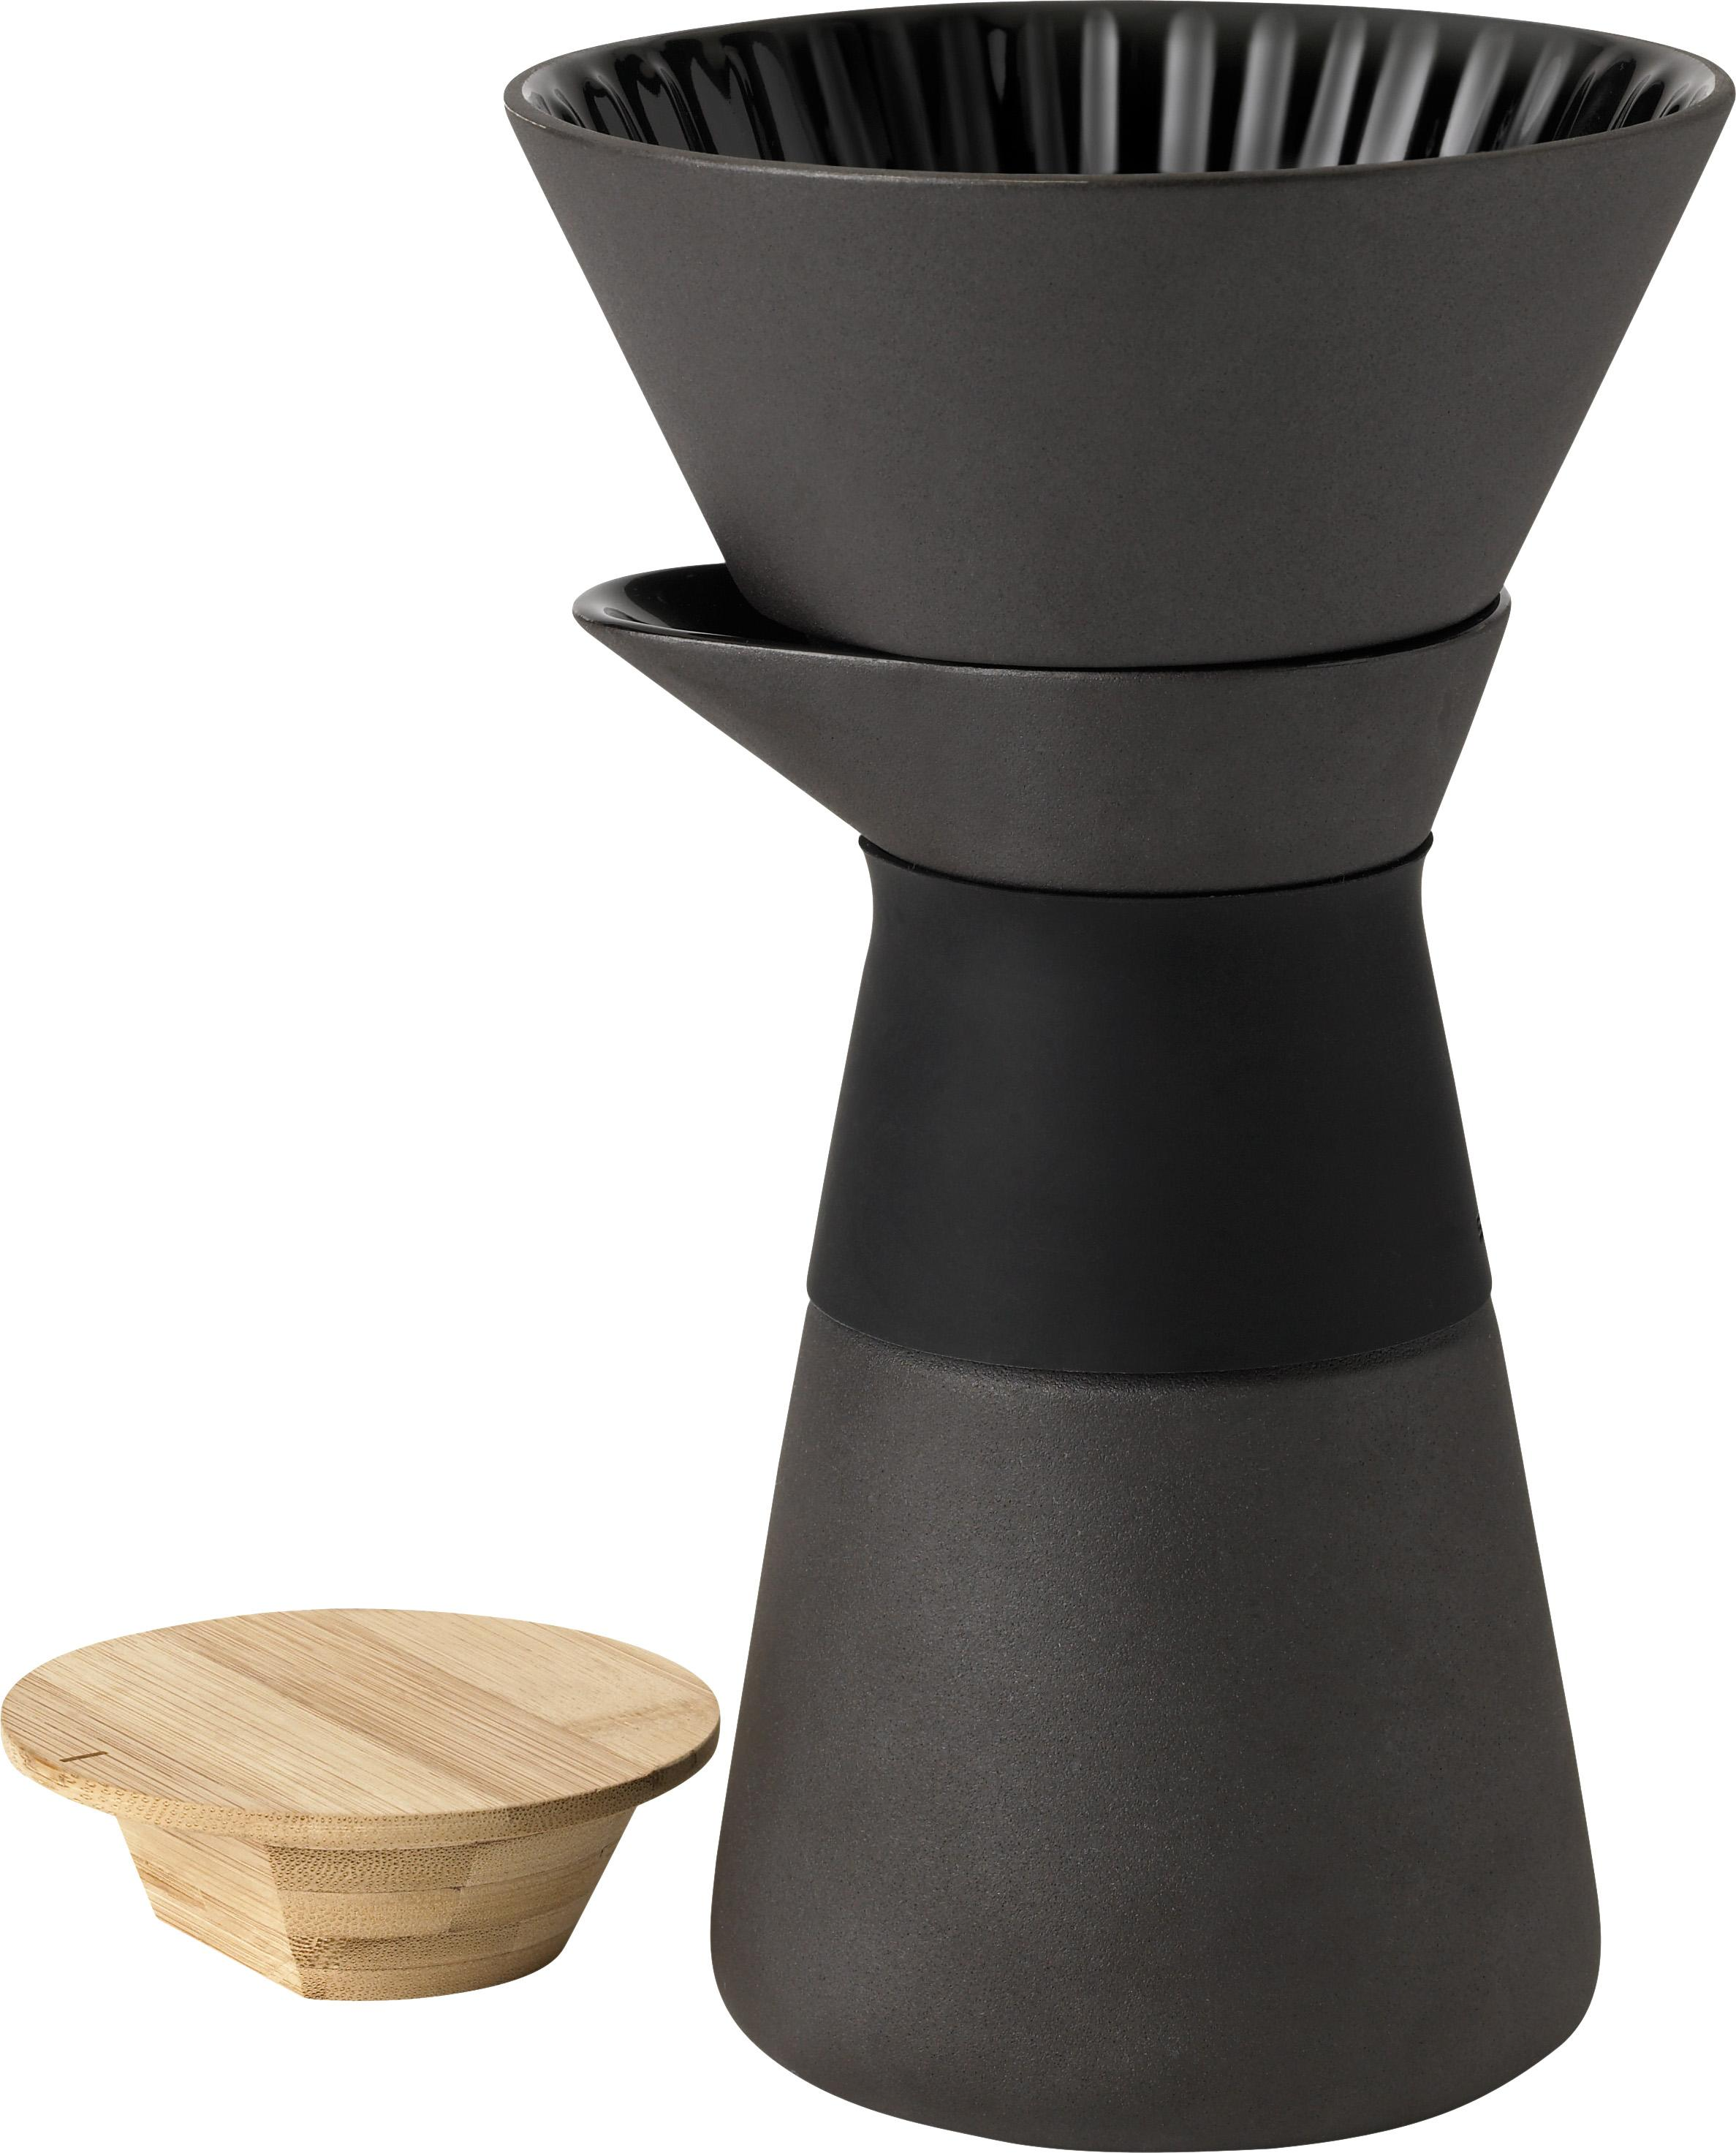 Cafetière Theo, Deksel: bamboehout, Zwart, 500 ml